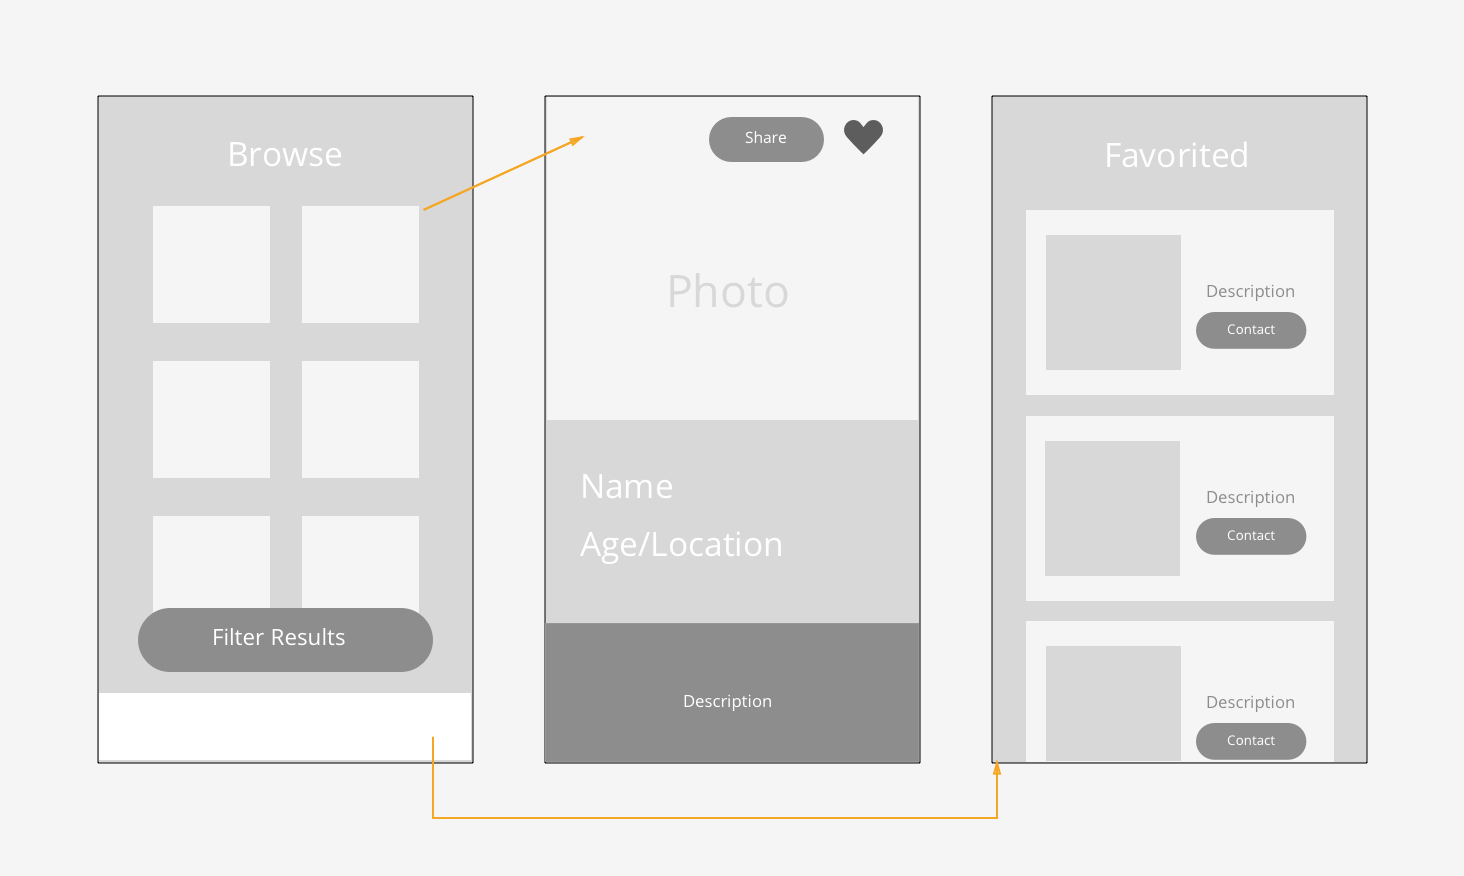 Low-Fidelity - I started out my prototype by using Sketch to make some simple layouts for most of the screens in the app. However, there were a substation amount of changes to the final designs.